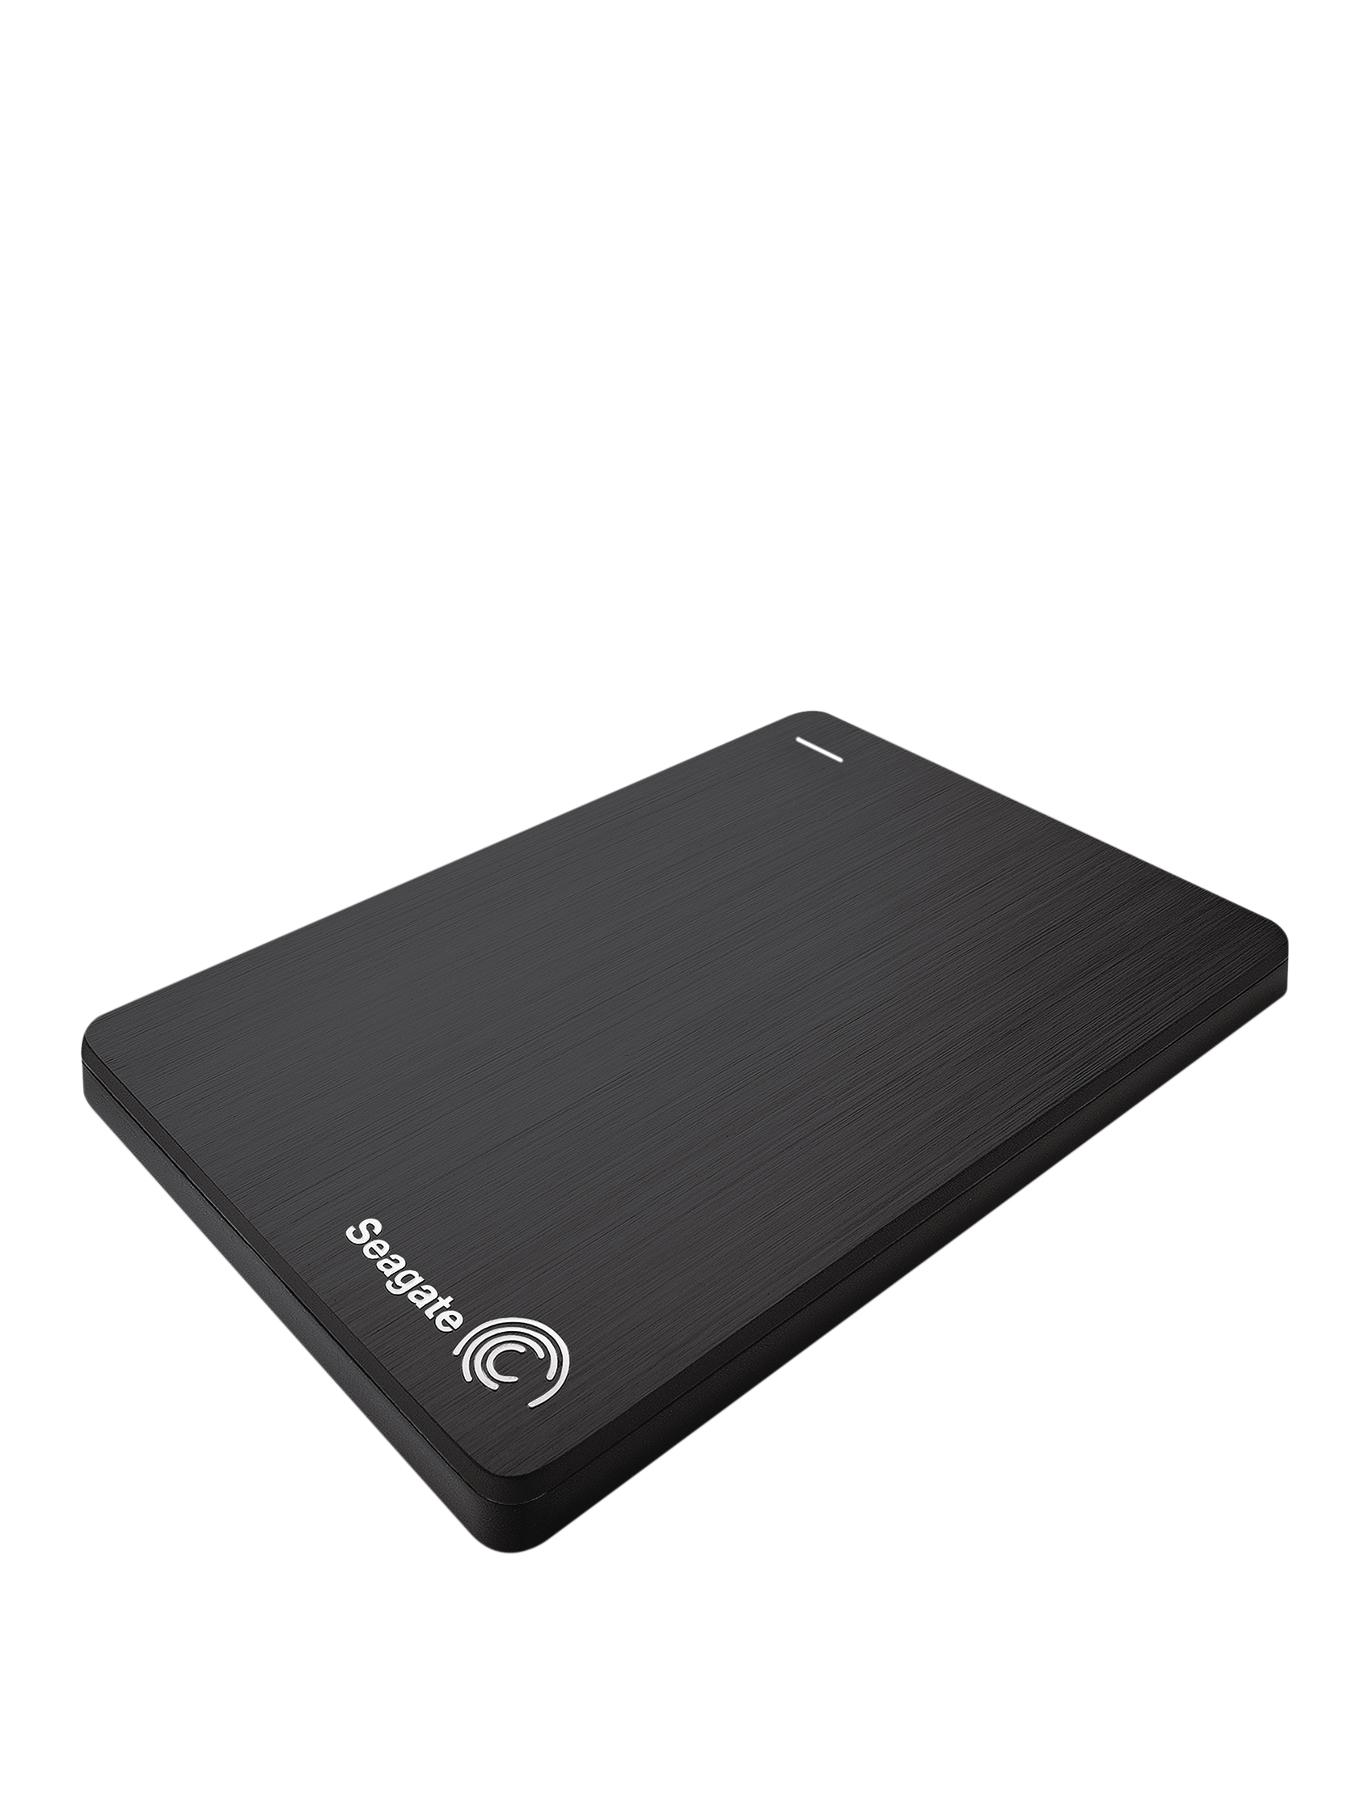 Slim 500Gb External Portable Hard Drive - Black